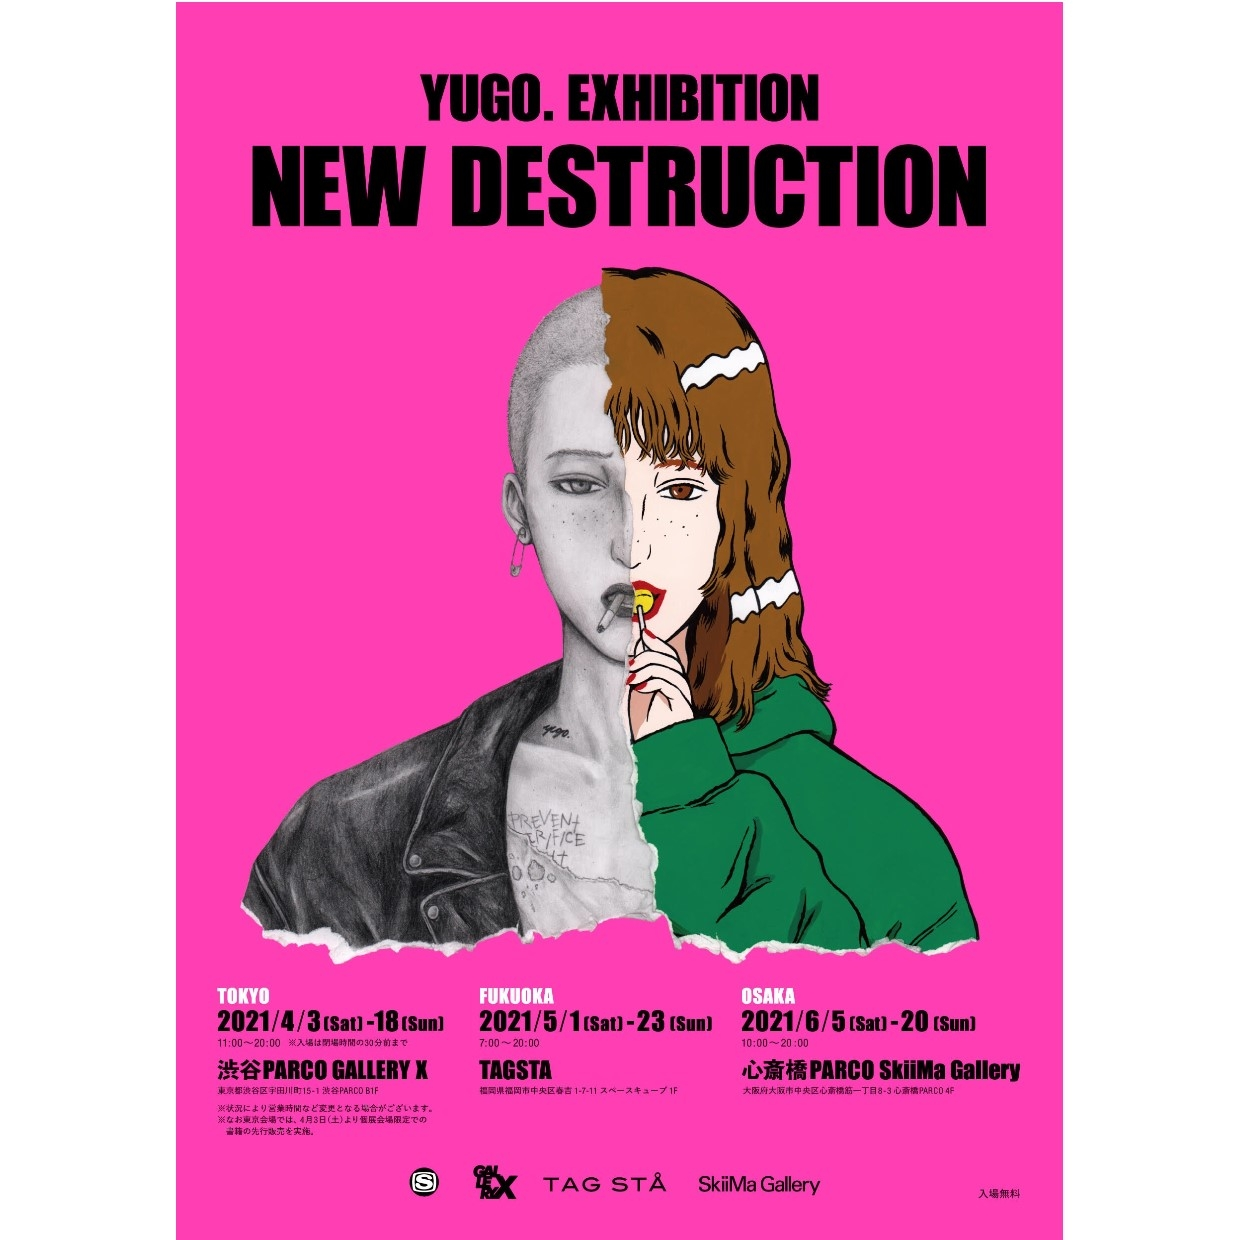 YUGO. EXHIBITION「NEW DESTRUCTION」